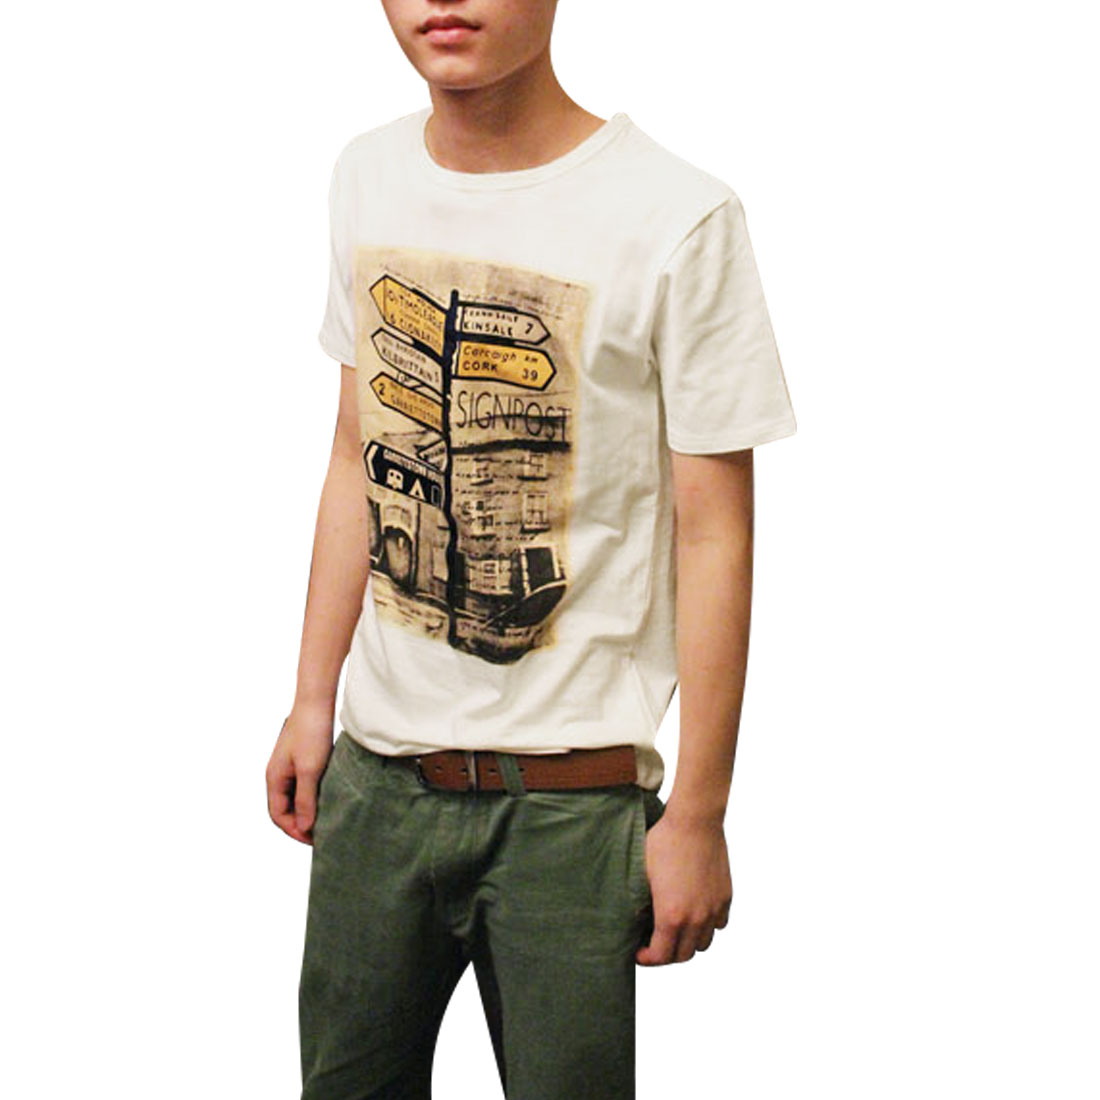 Letters Print Summer Casual T-Shirt Blouse White S for Men